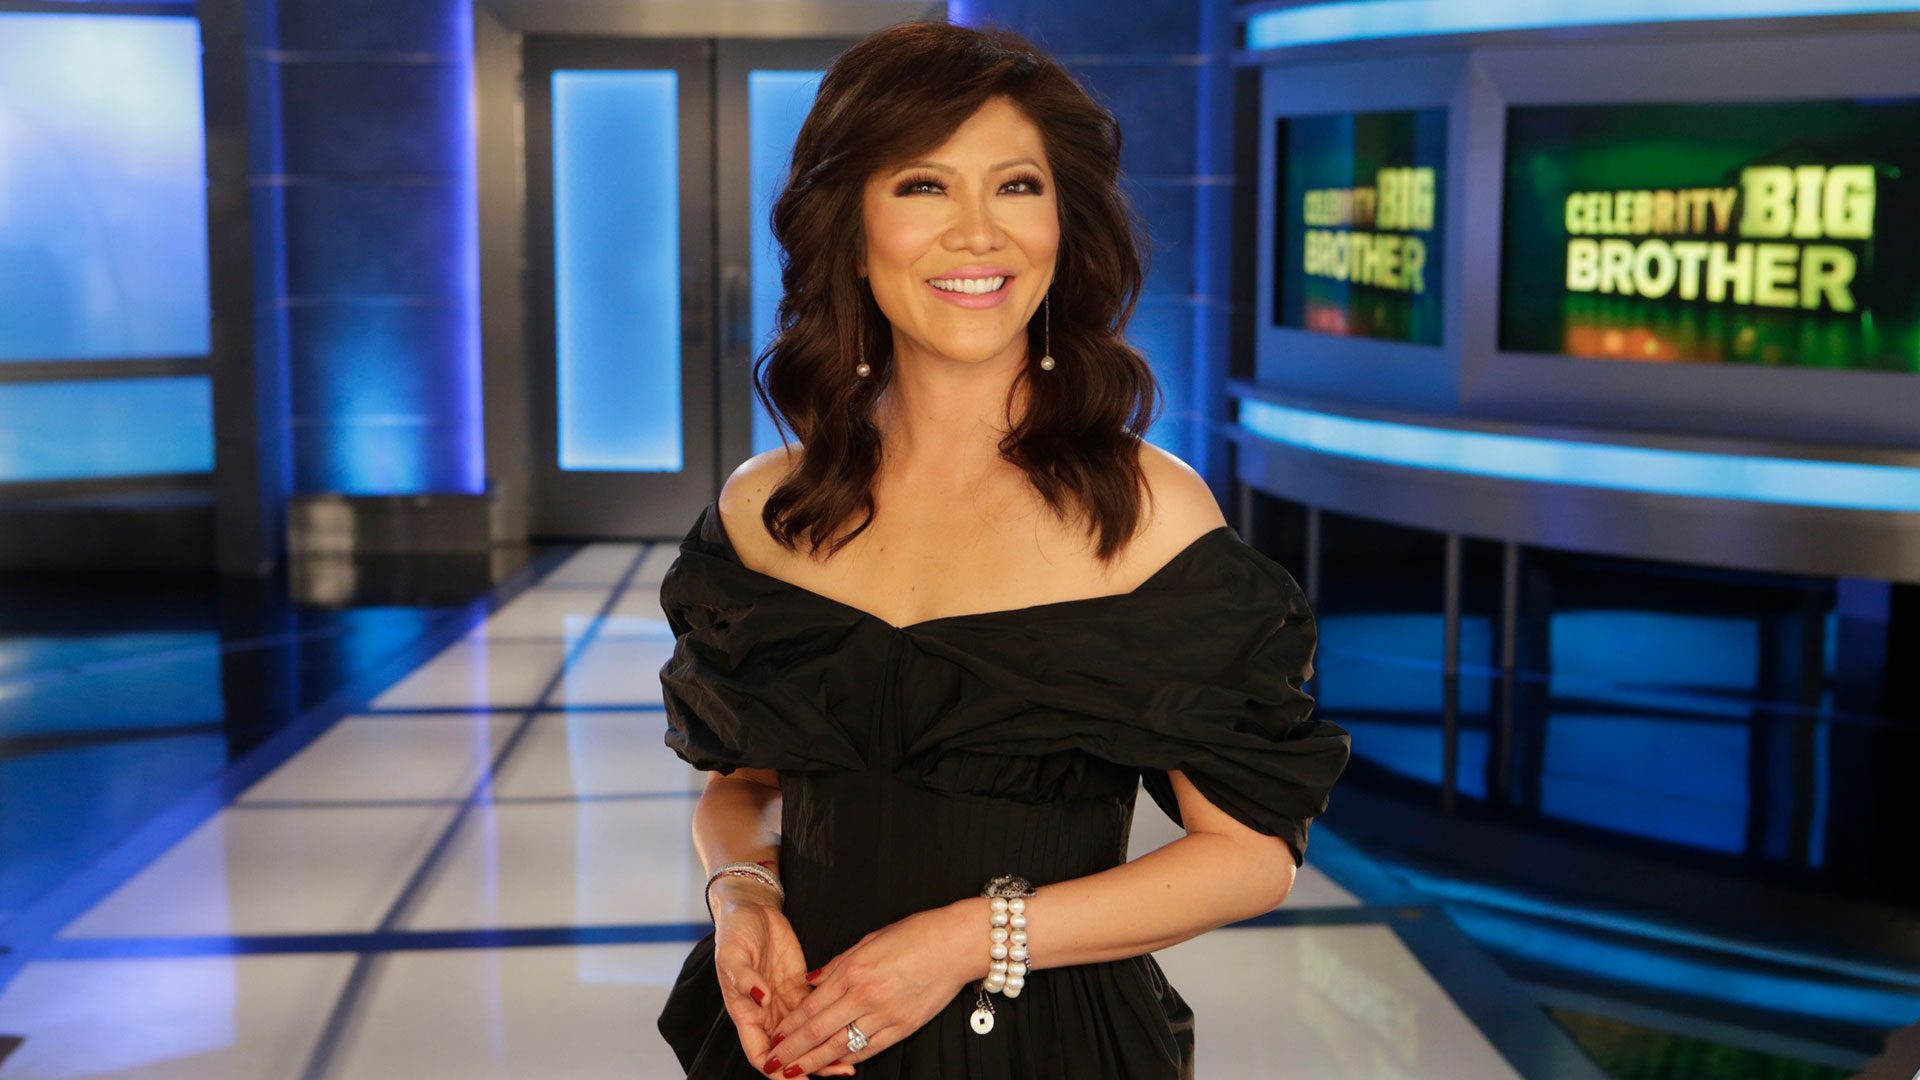 Celebrity Big Brother welcomes 11 new—and famous—Houseguests!